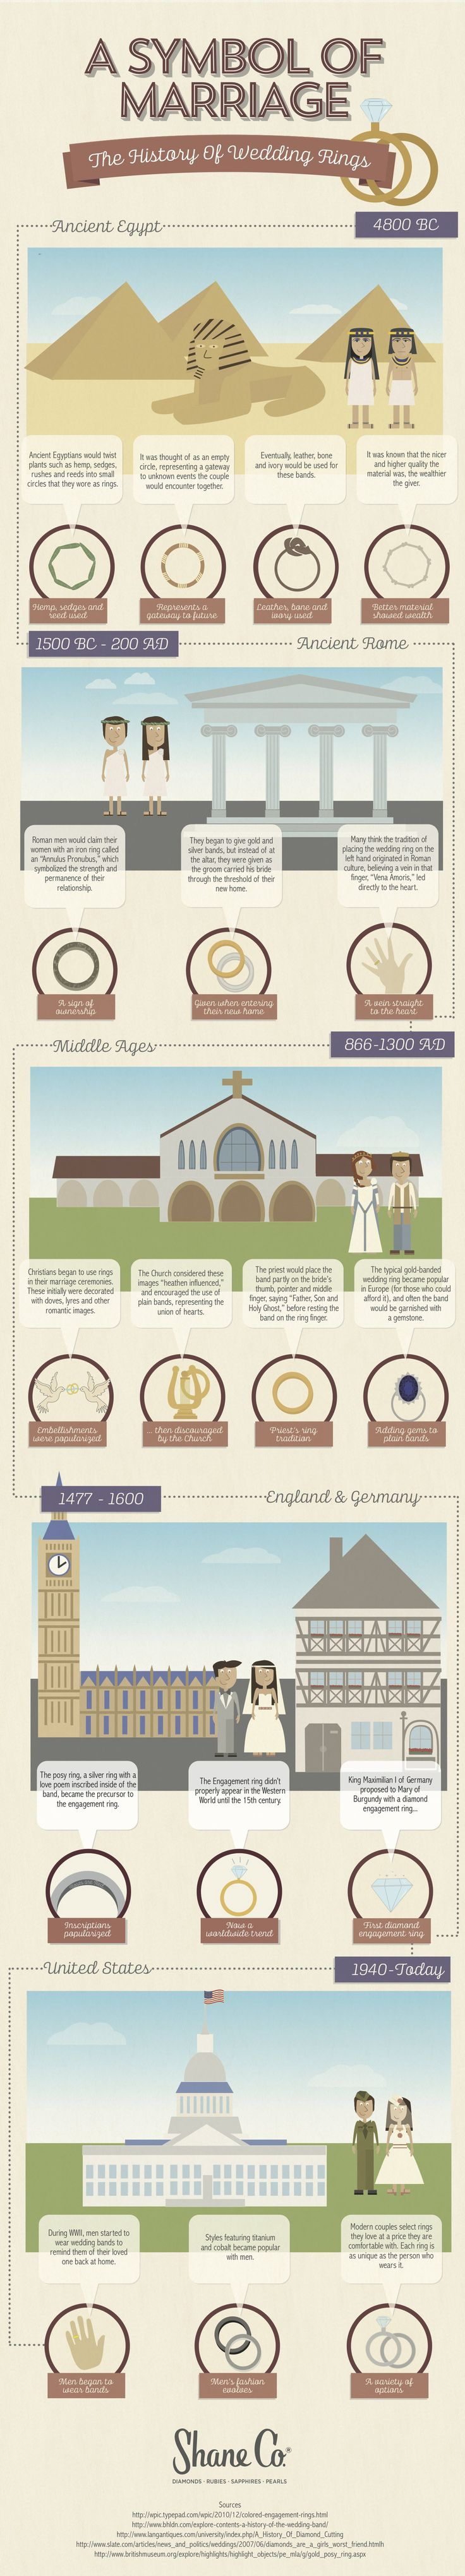 Do you know the history behind the wedding ring? Yes it is a symbol of marriage, but how did it become one? Below is an infographic showing the history of wedding rings.